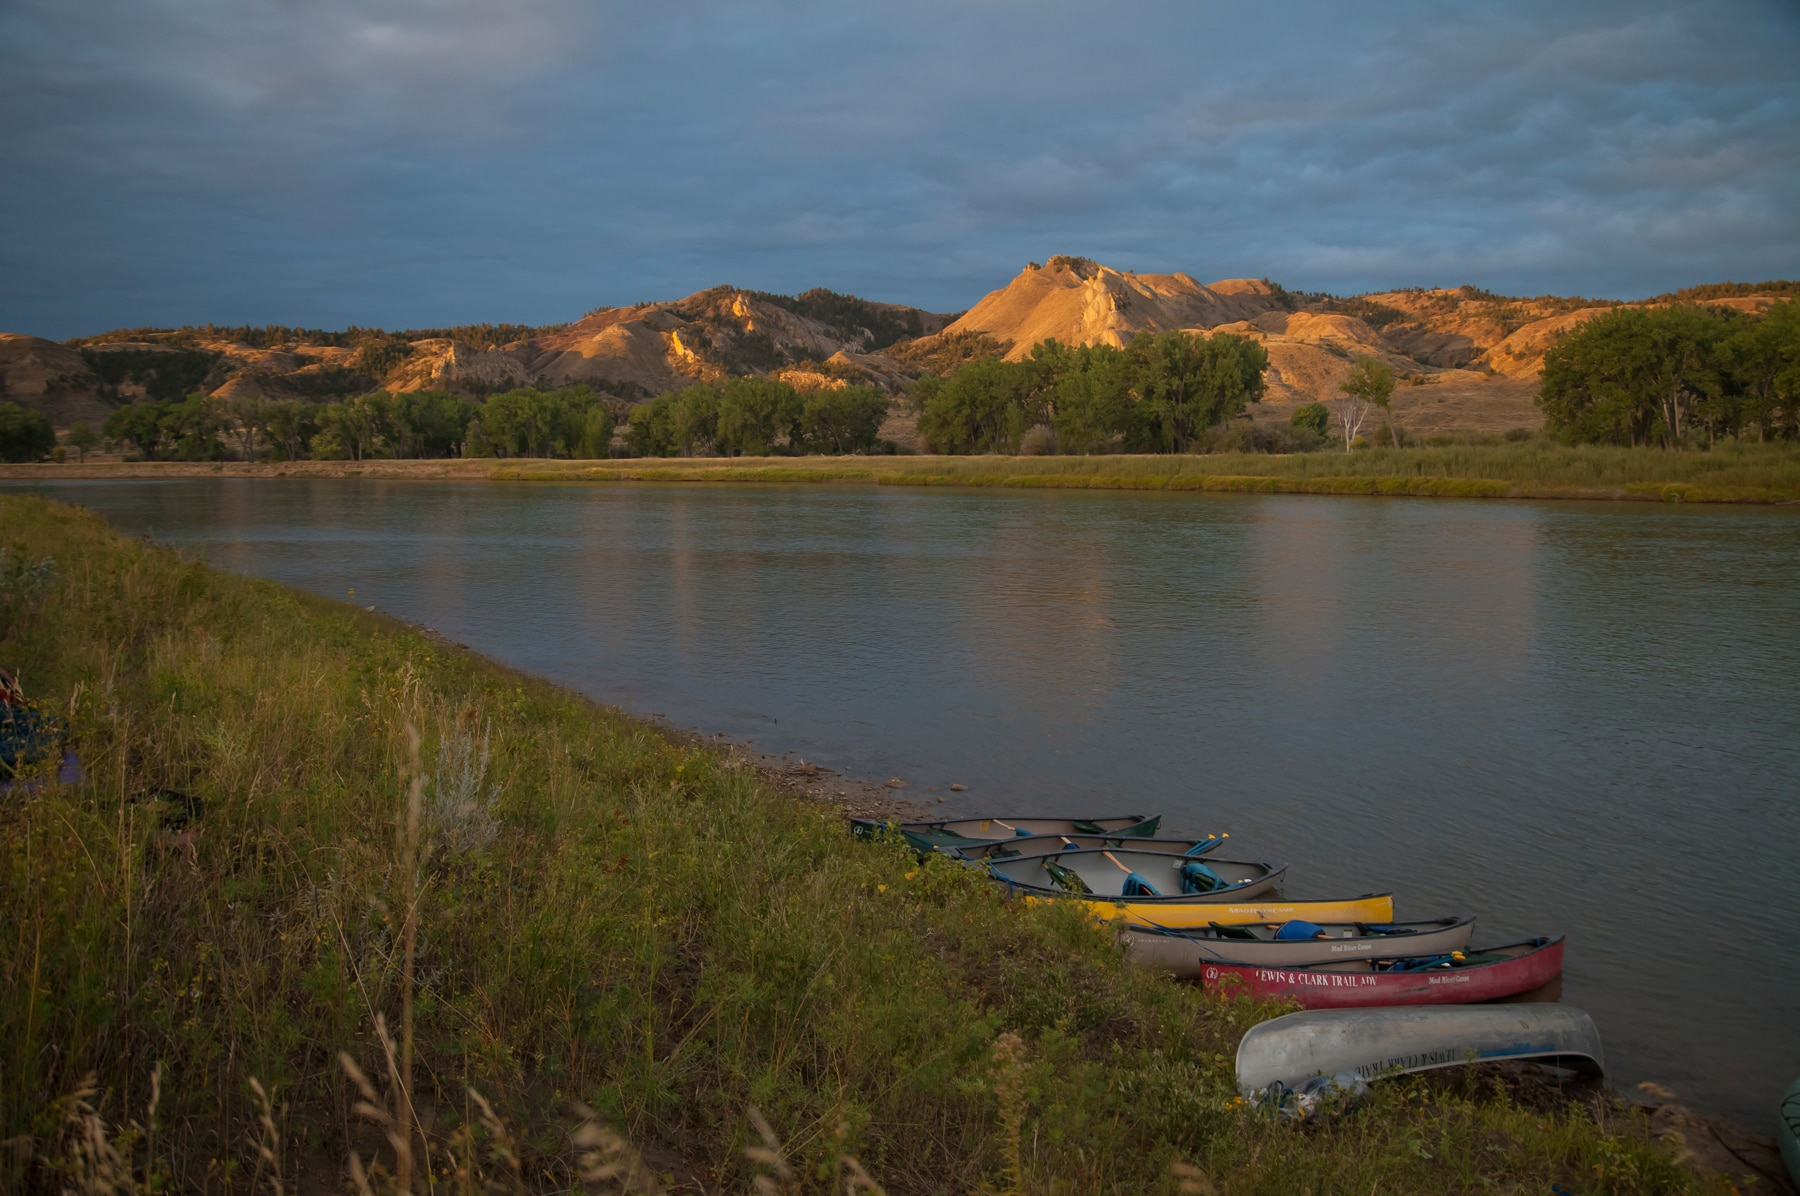 Canoas na beira do Rio Missouri (Dennis Lingohr/APR)Canoes sitting on the bank of river (Dennis Lingohr/APR)